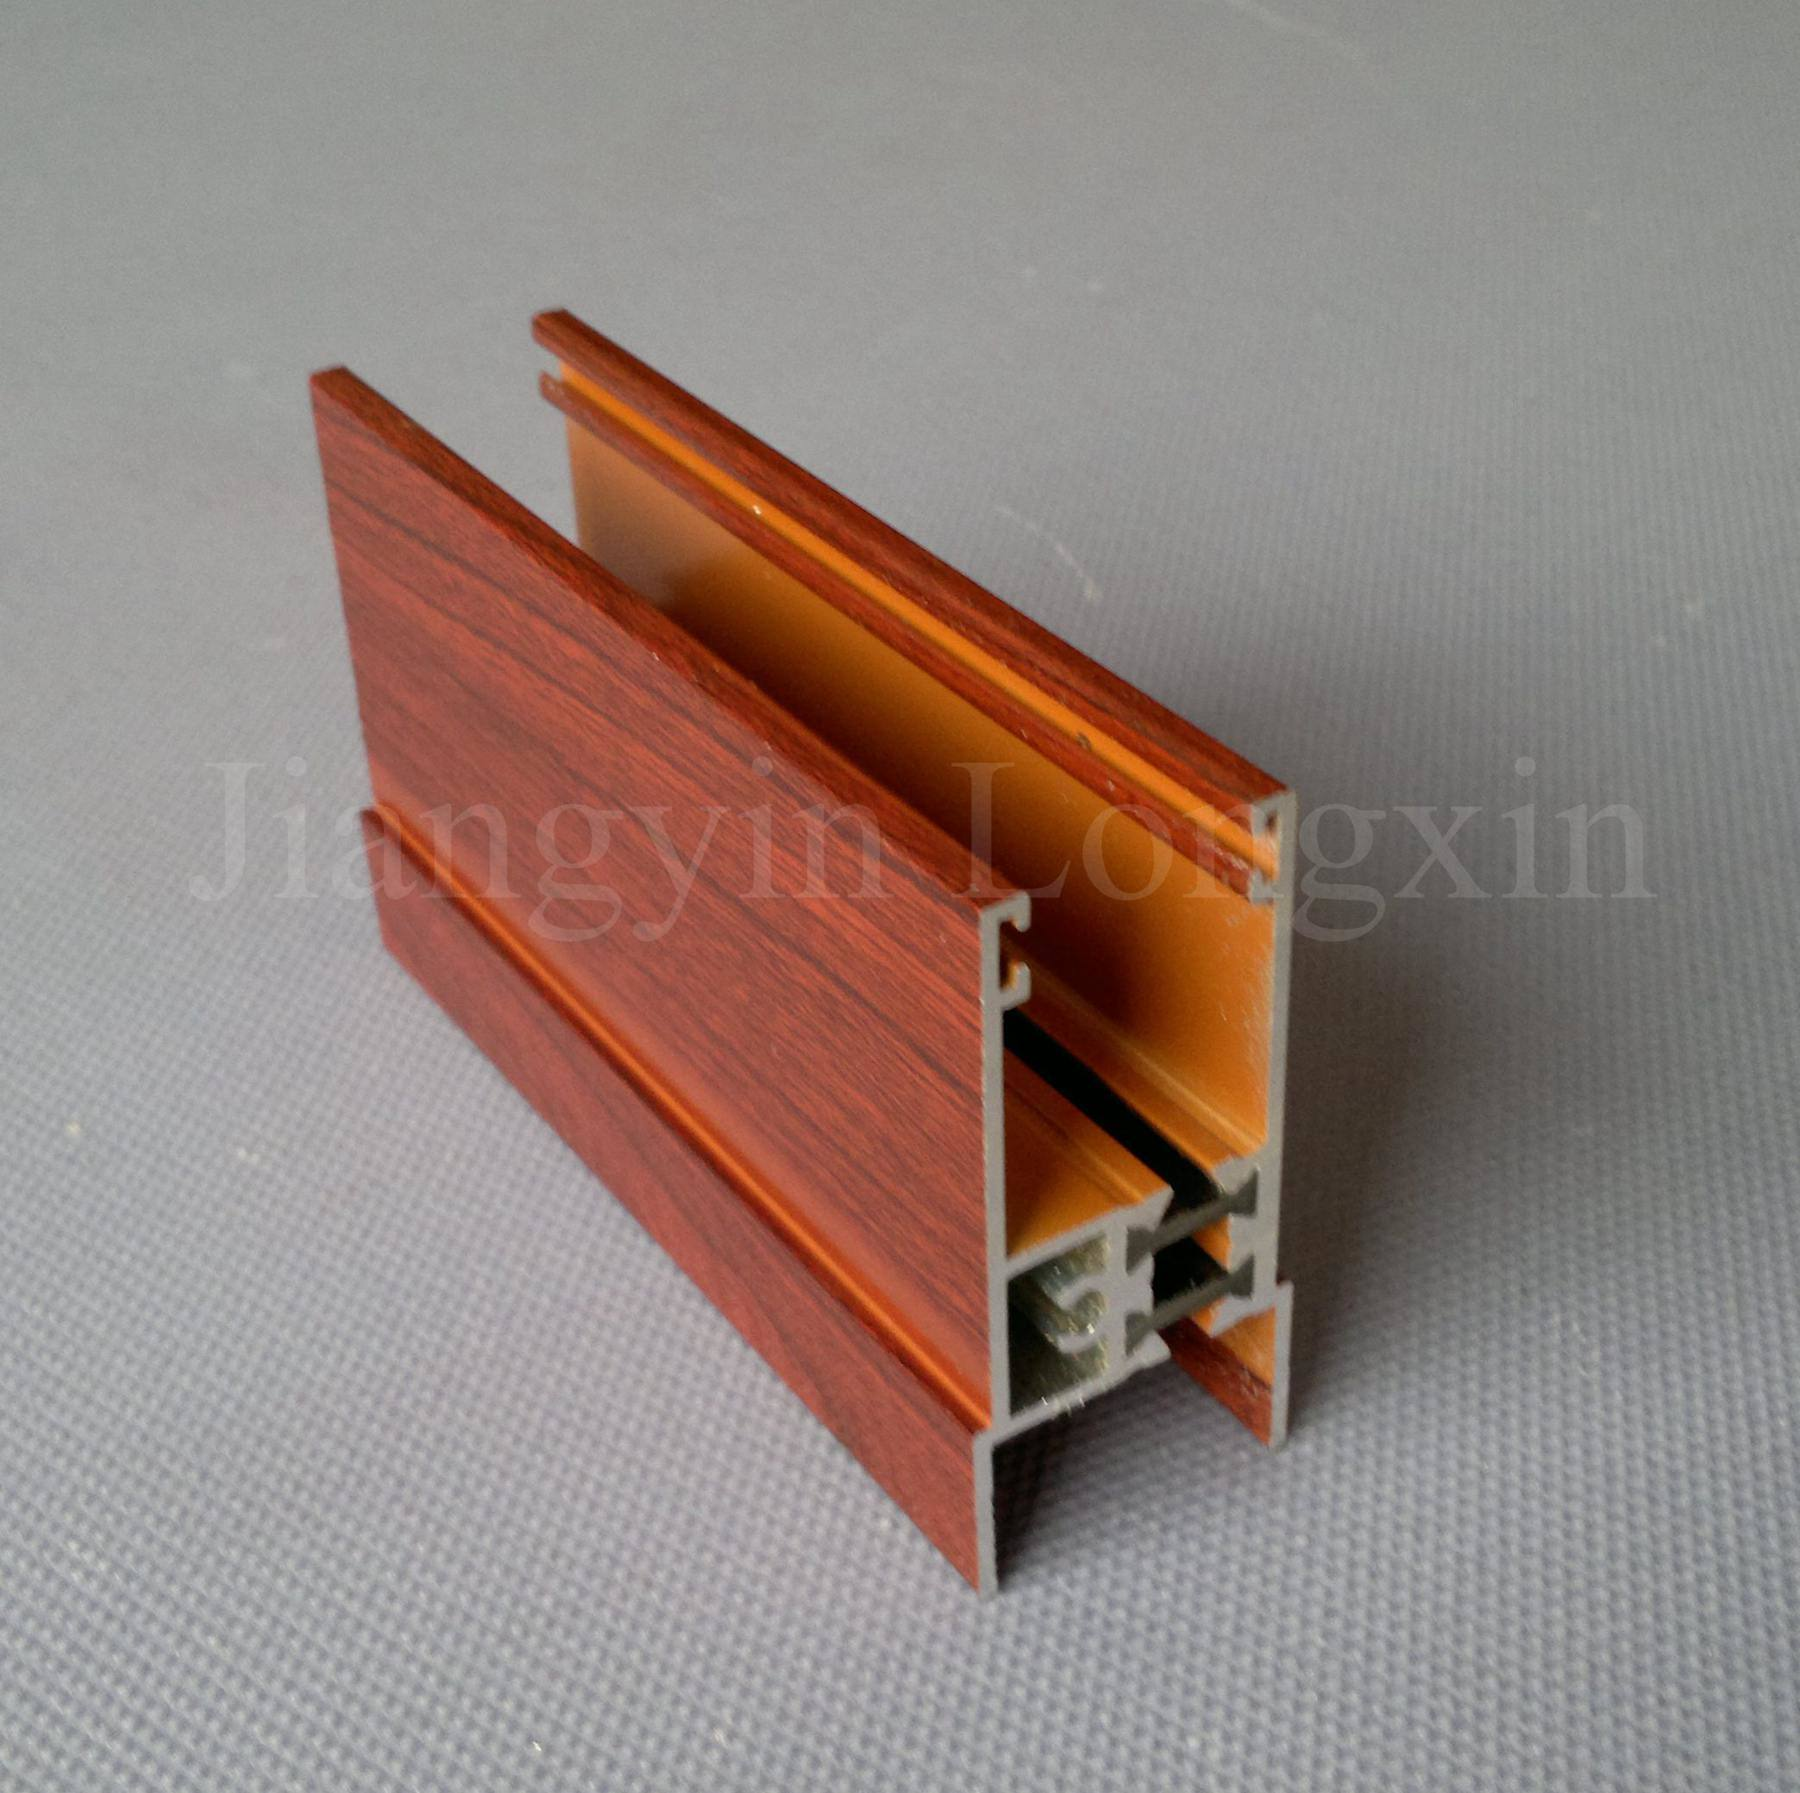 Wooden Transfer Printed Aluminum Profiles for Windows